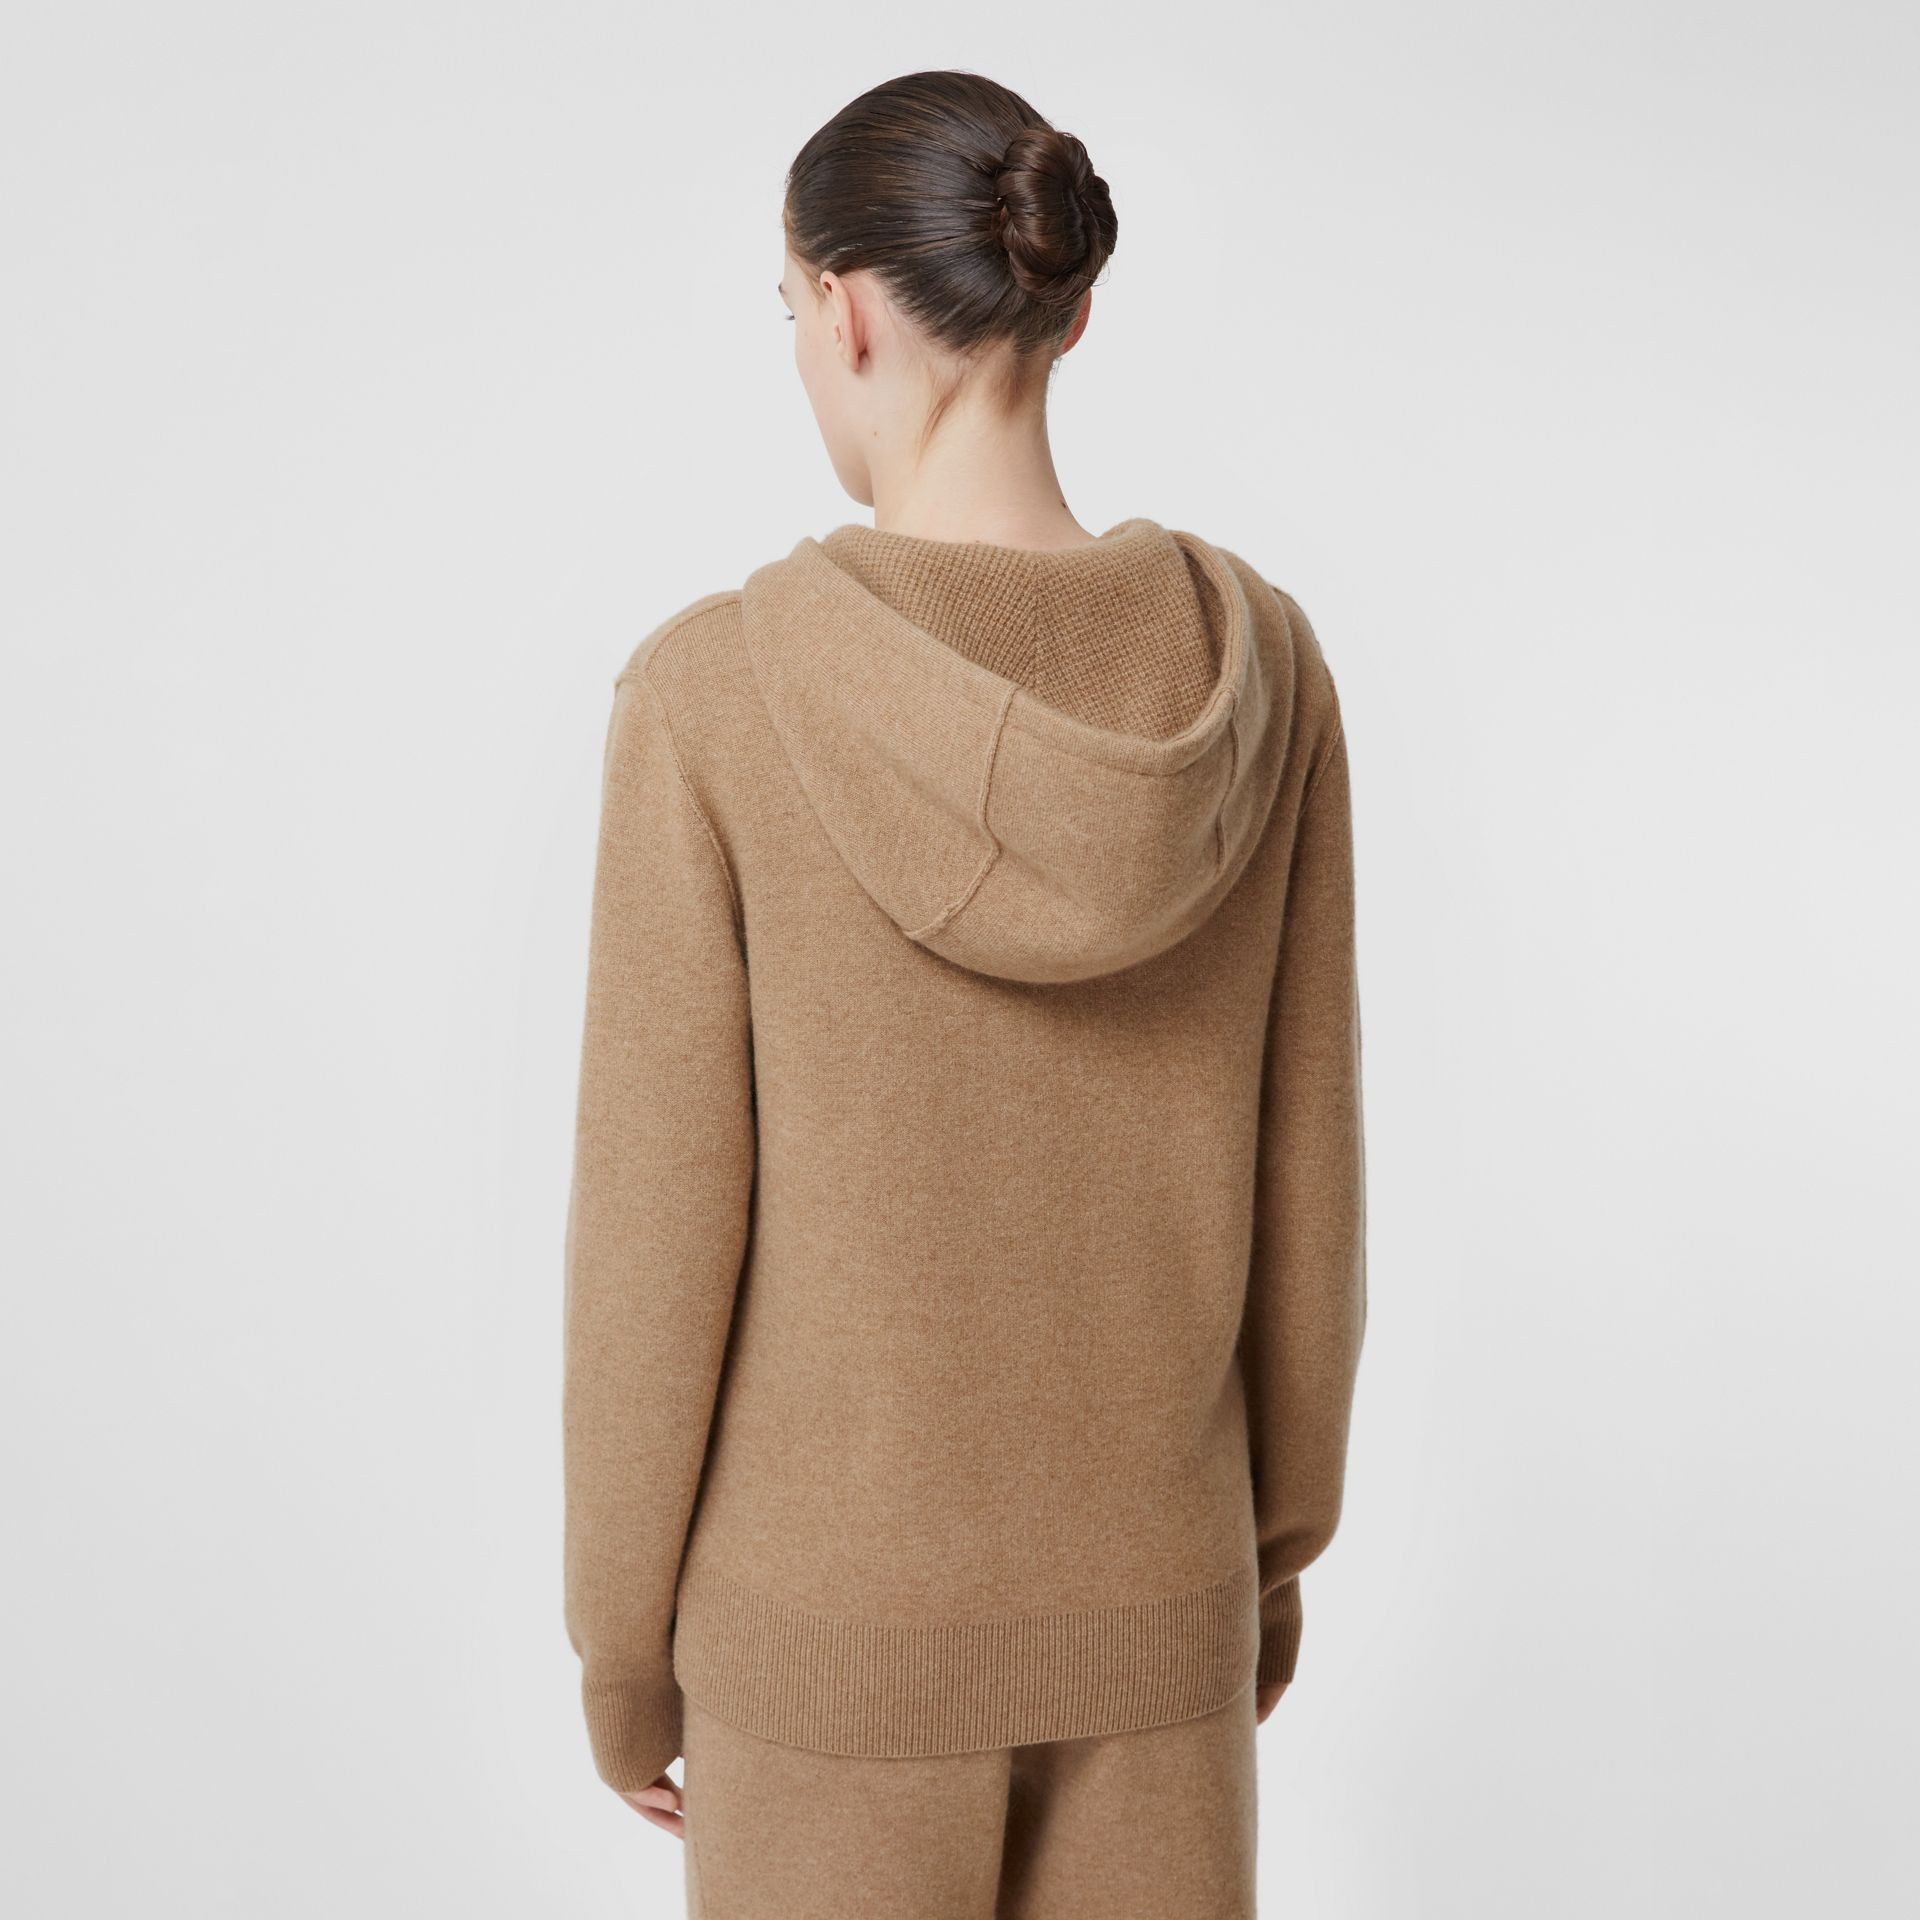 Monogram Motif Cashmere Blend Hooded Top in Pale Coffee - Women | Burberry United Kingdom - gallery image 2